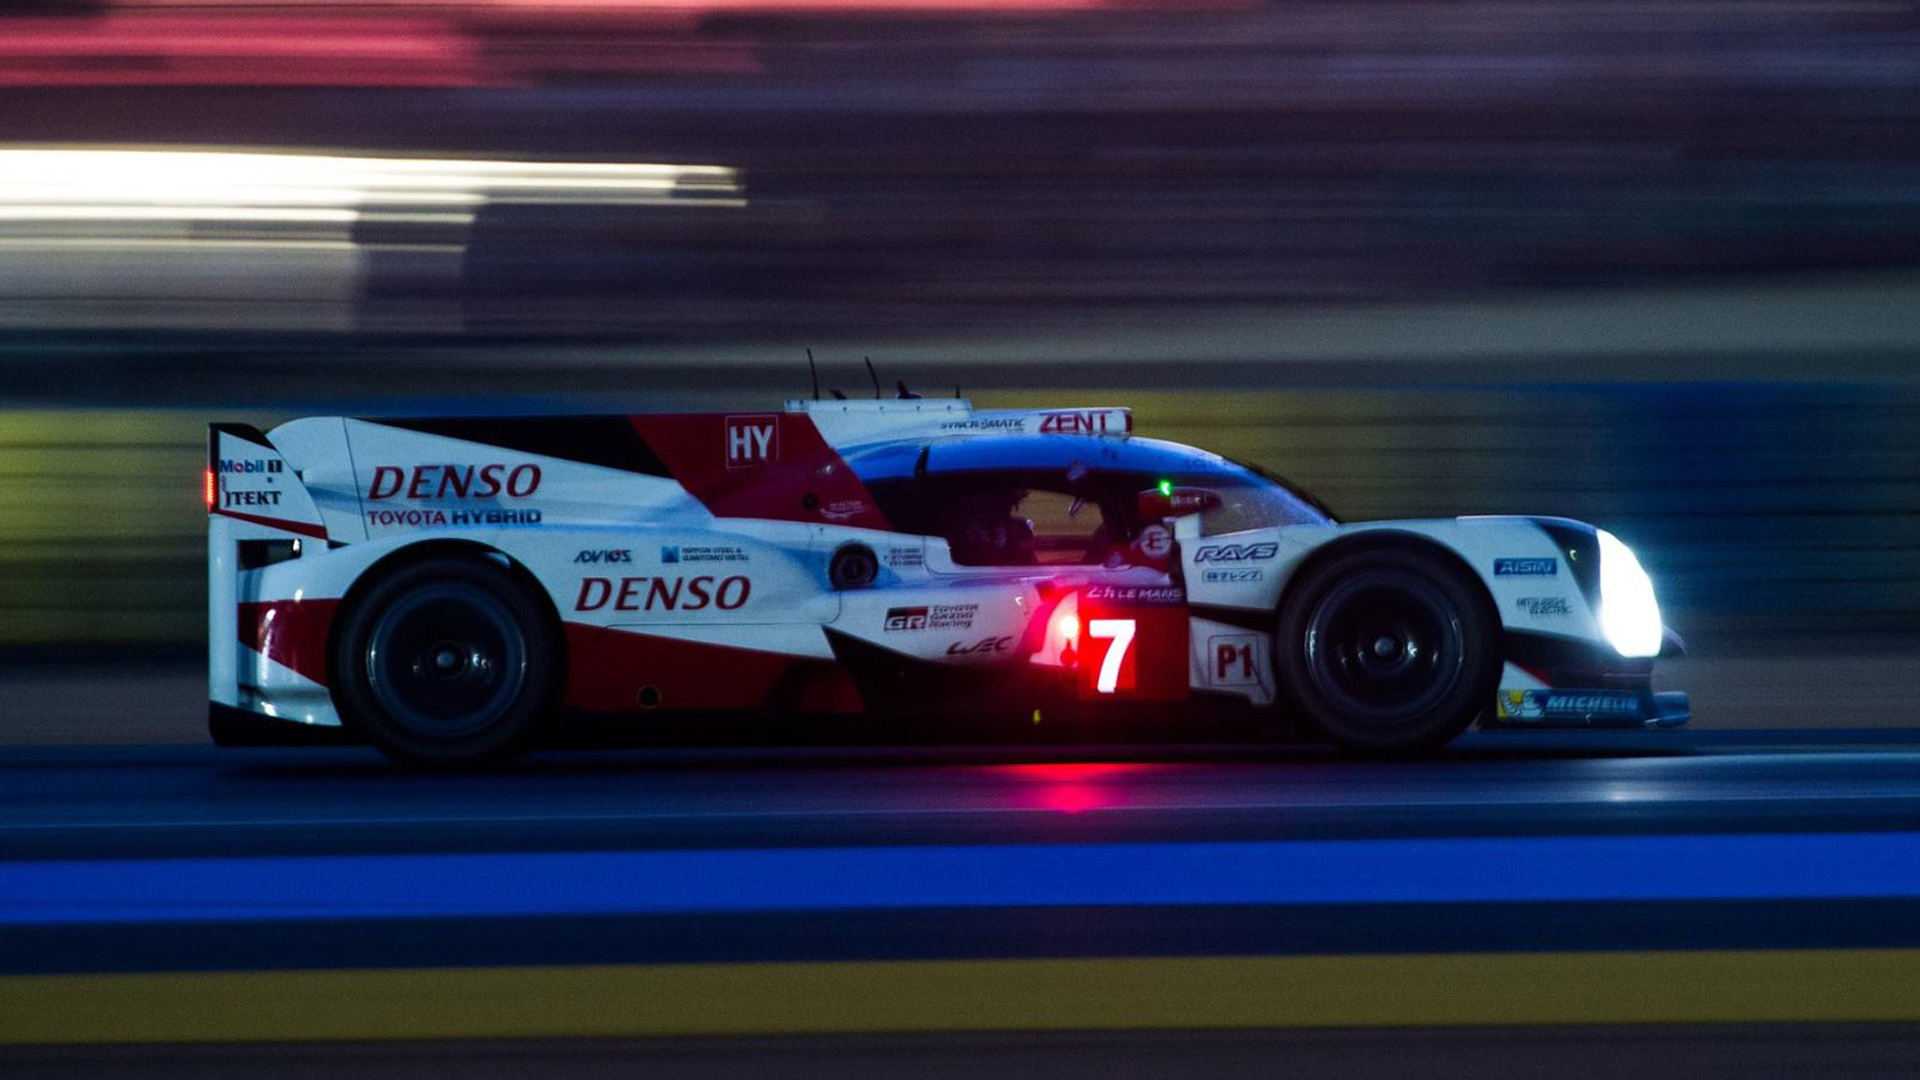 No. 7 Toyota TS050 Hybrid LMP1 at the 2017 24 Hours of Le Mans